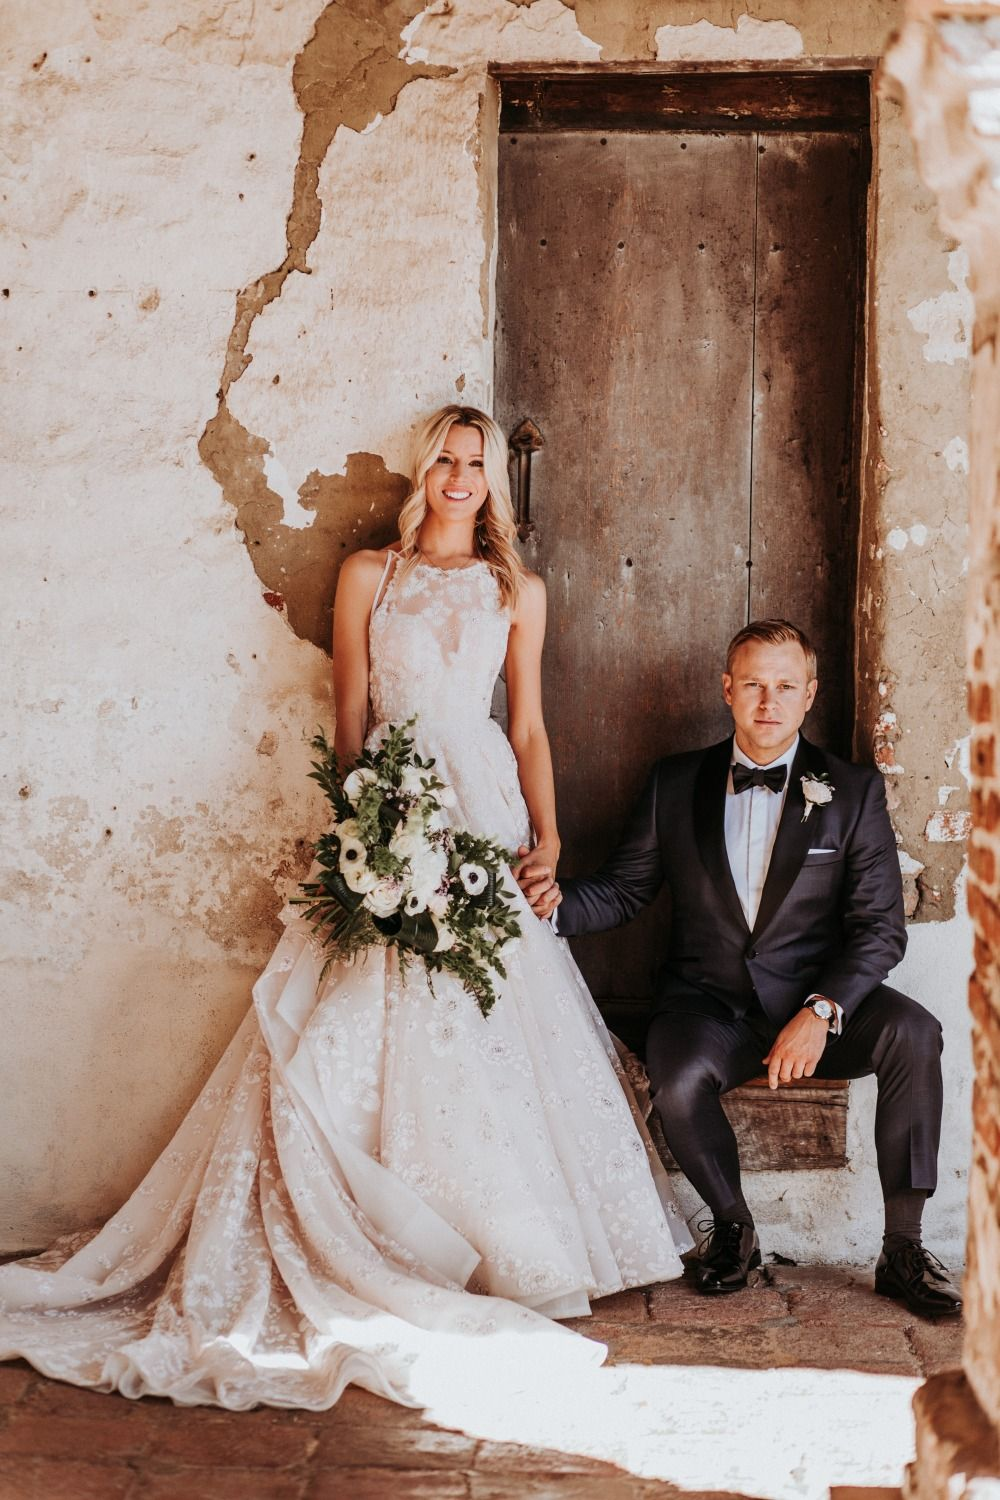 How To Have A Glamorous Chic Wedding Without Going Over The Top Wedding Wedding Dresses Strapless Wedding Dress